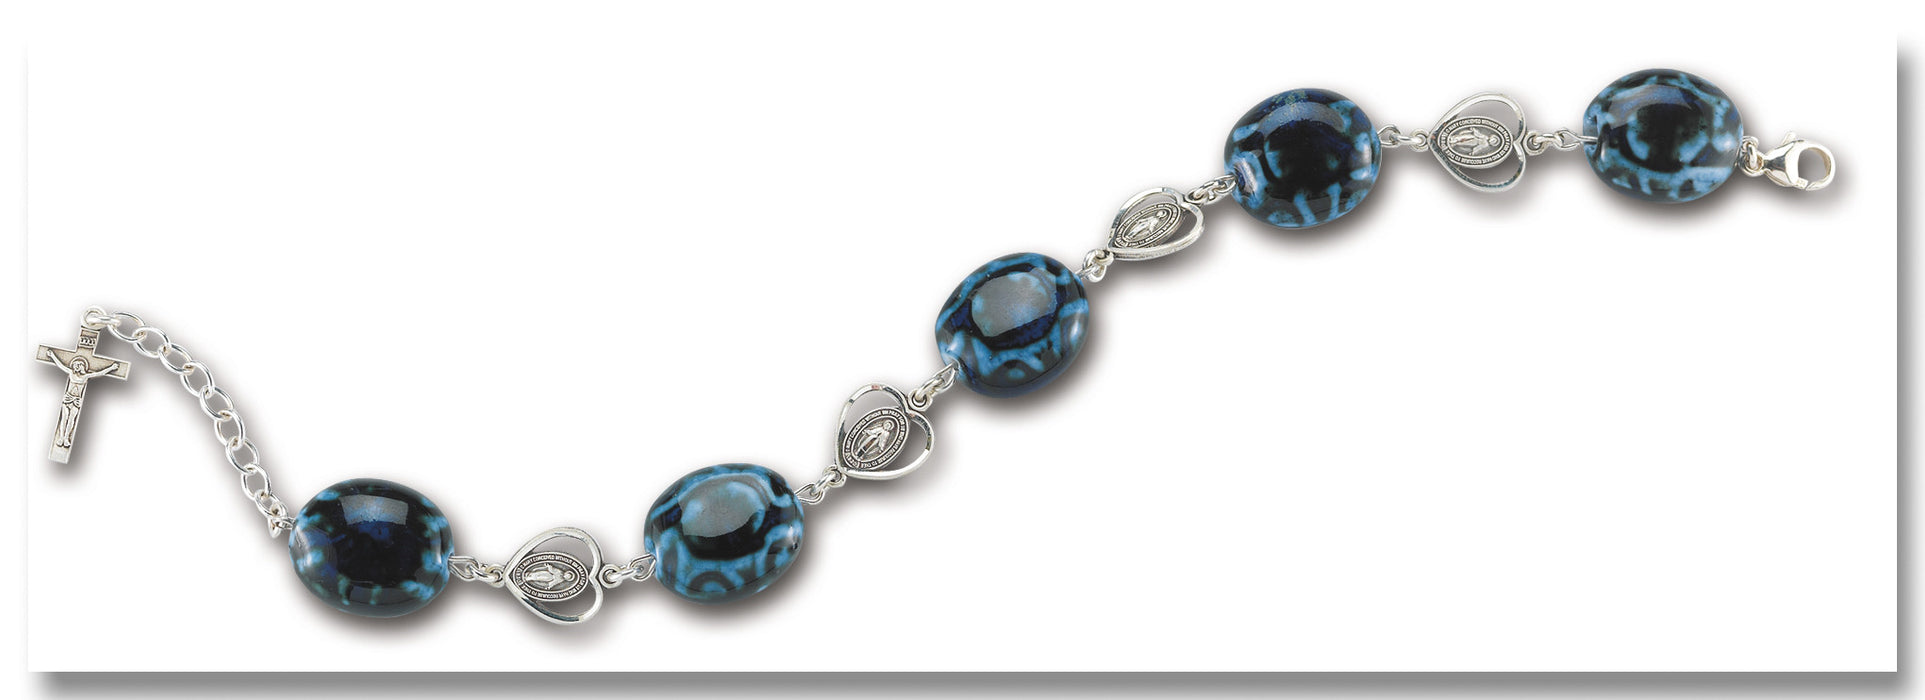 dark_and_light_blue_porcelain_bracelet